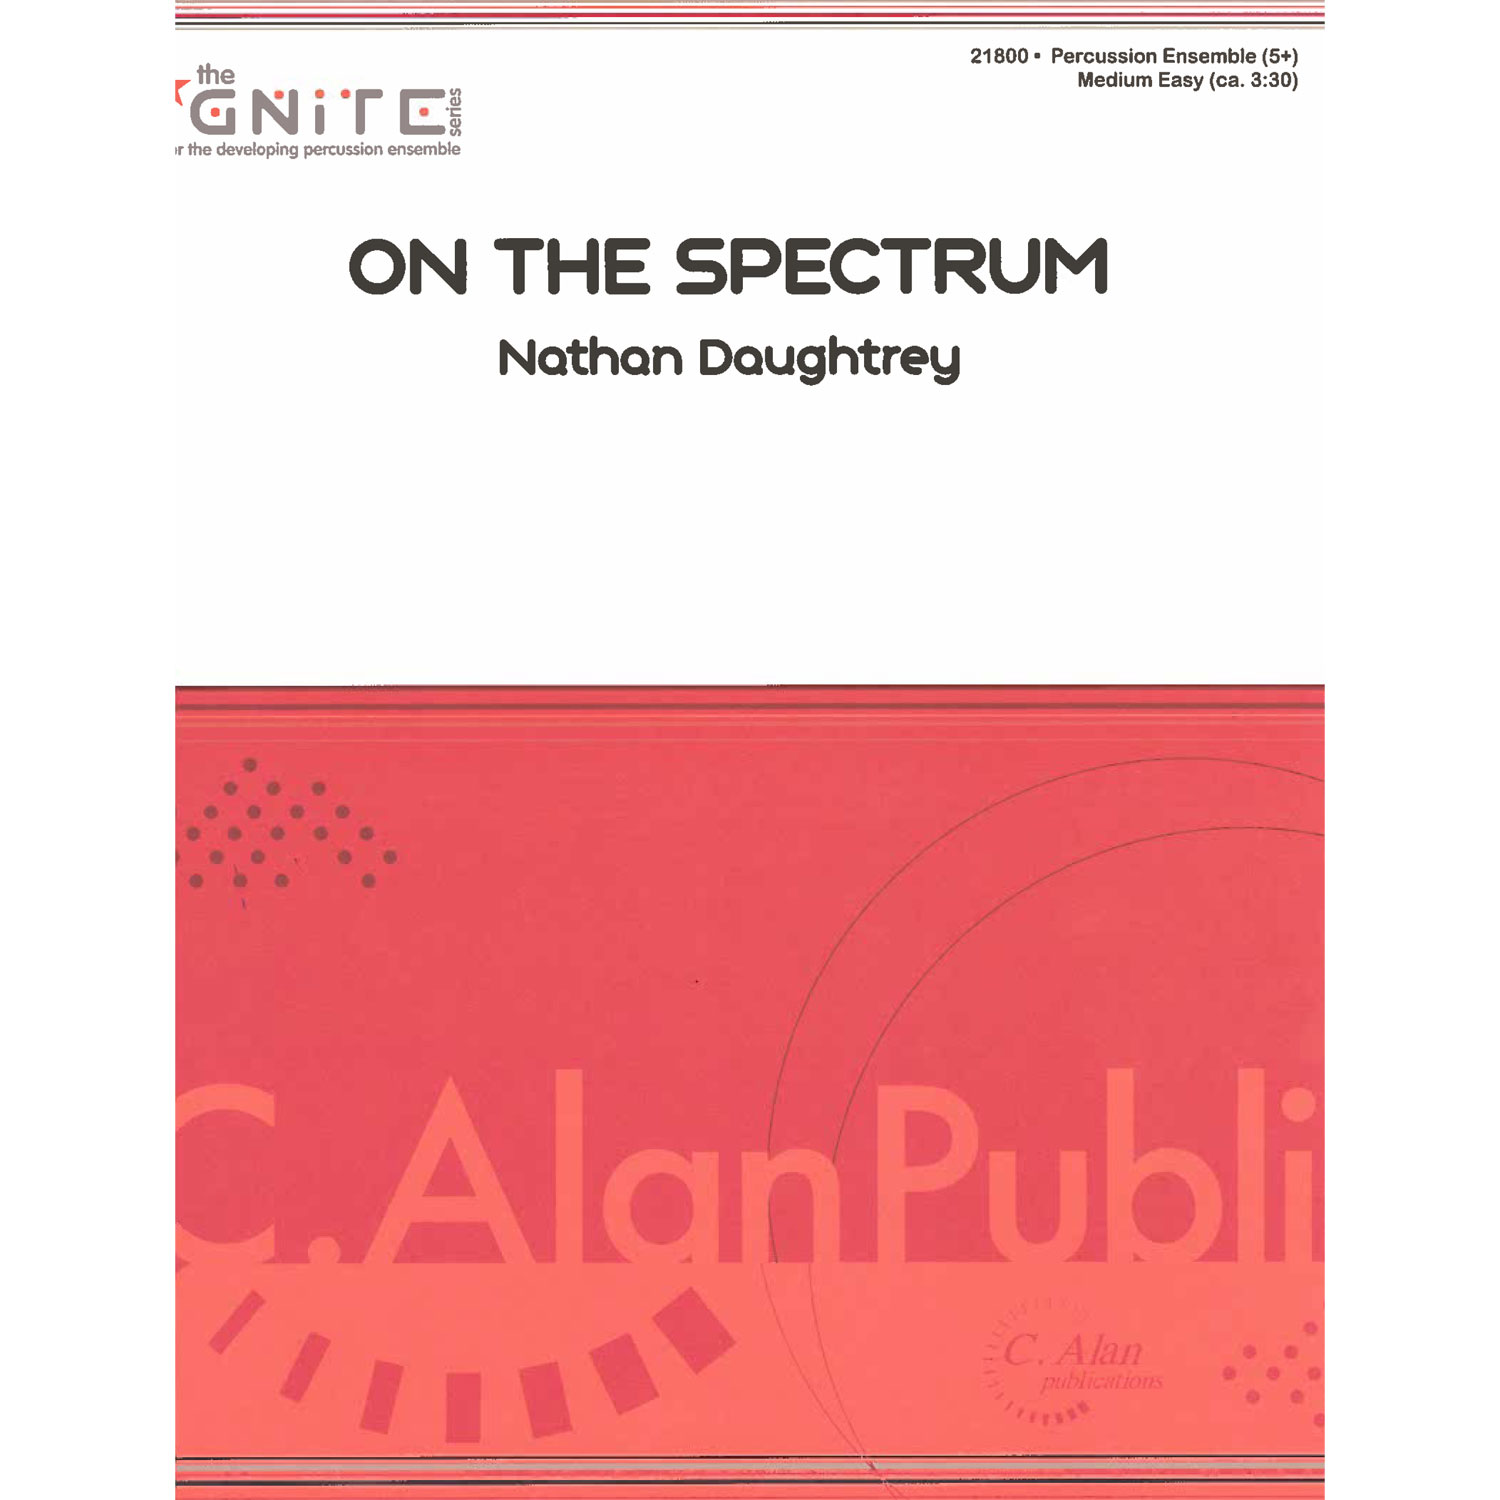 On the Spectrum by Nathan Daughtrey